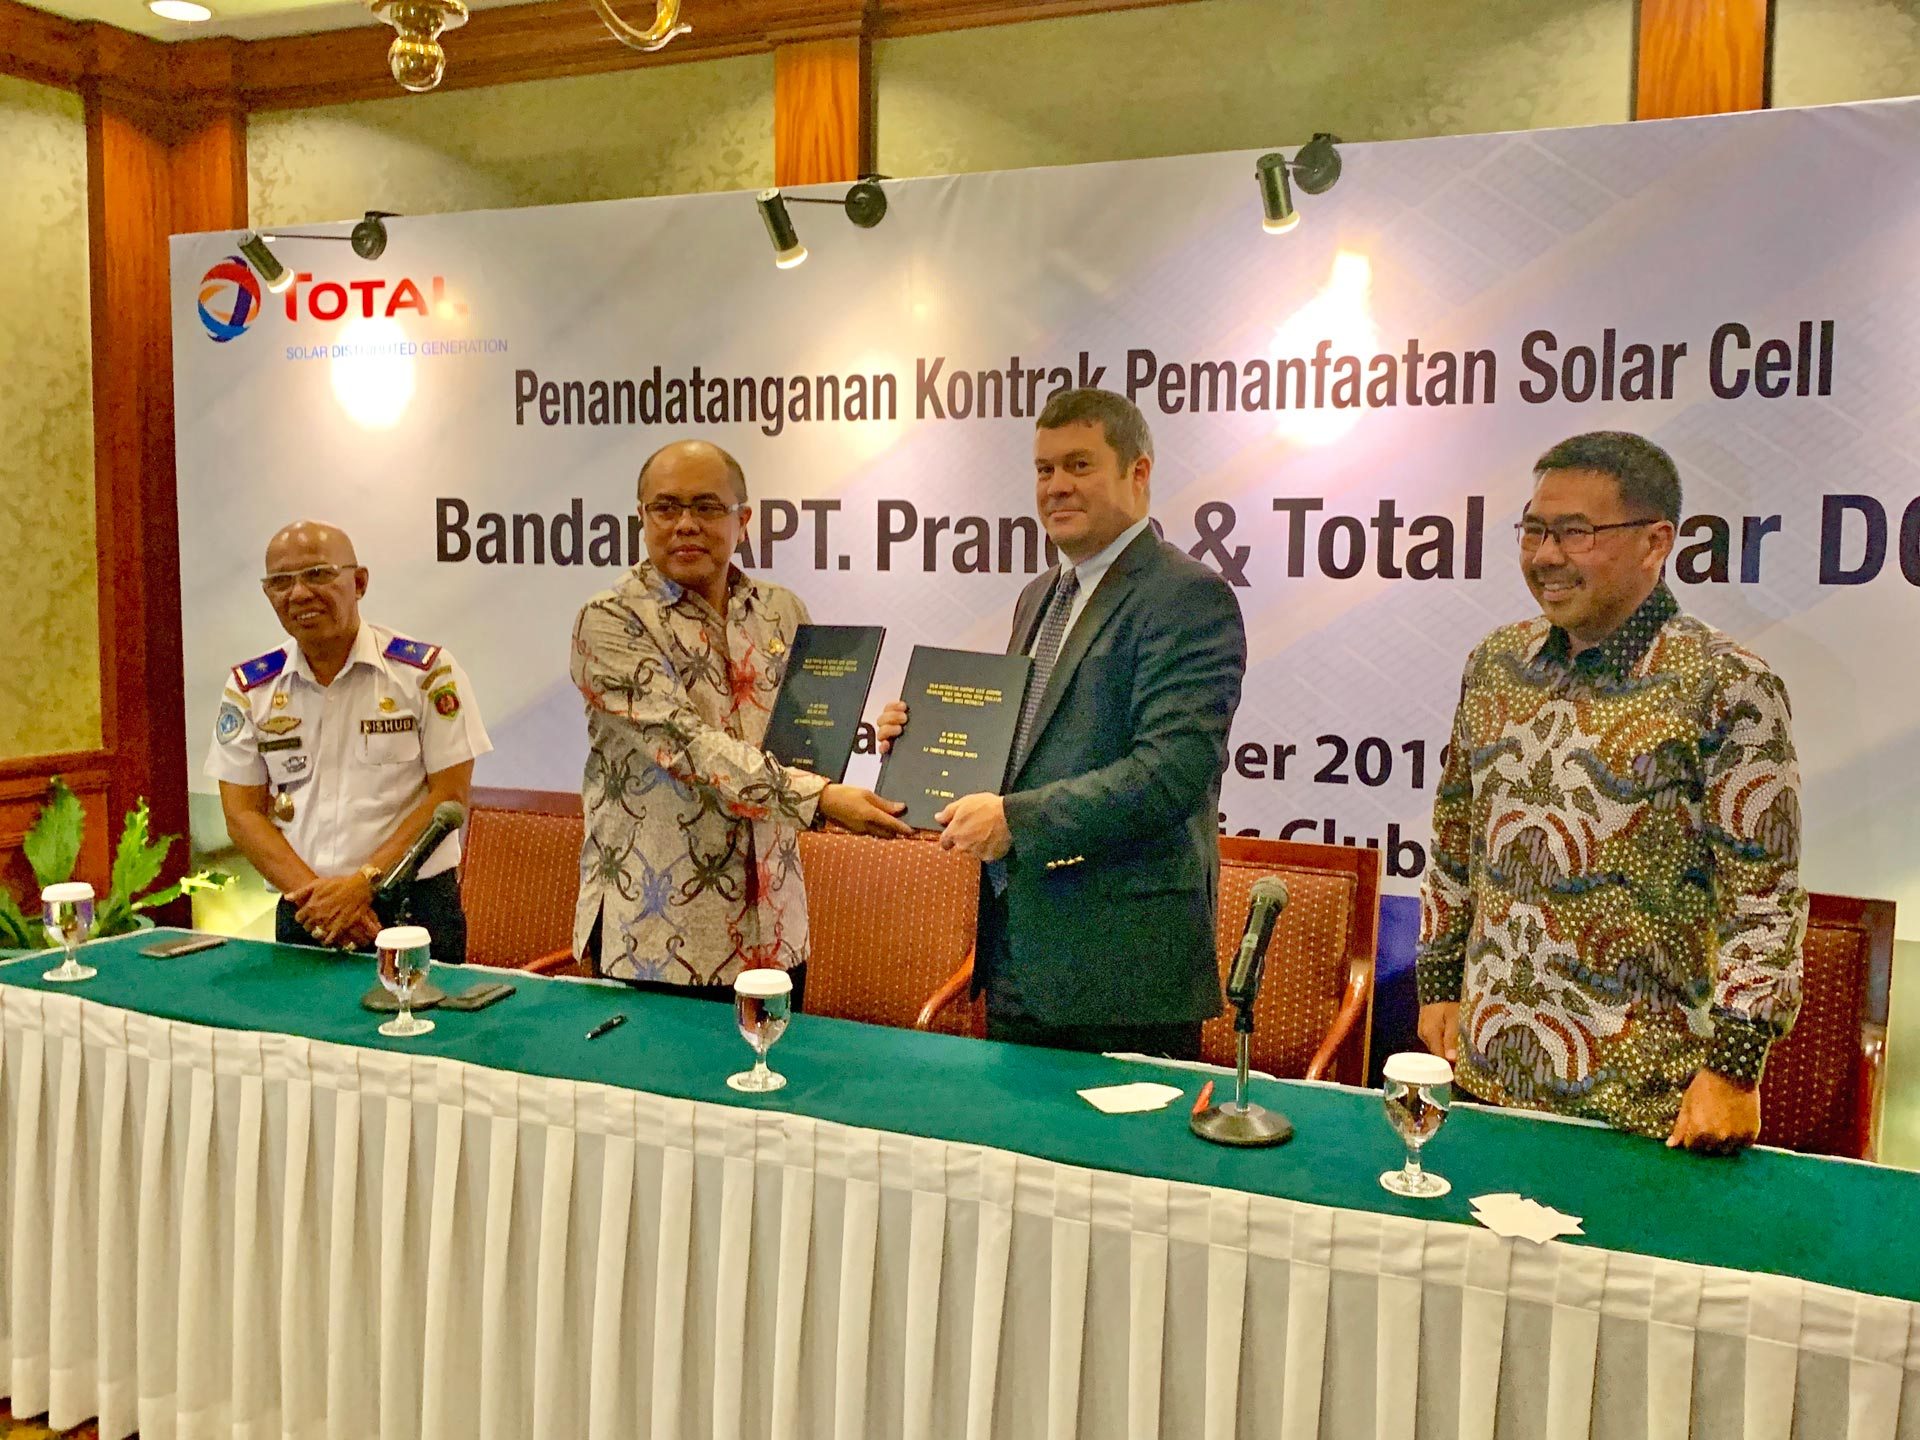 INDONESIA: TOTAL SOLAR DISTRIBUTED GENERATION TO SOLARIZE THE NEW AIRPORT OF THE FUTURE CAPITAL CITY